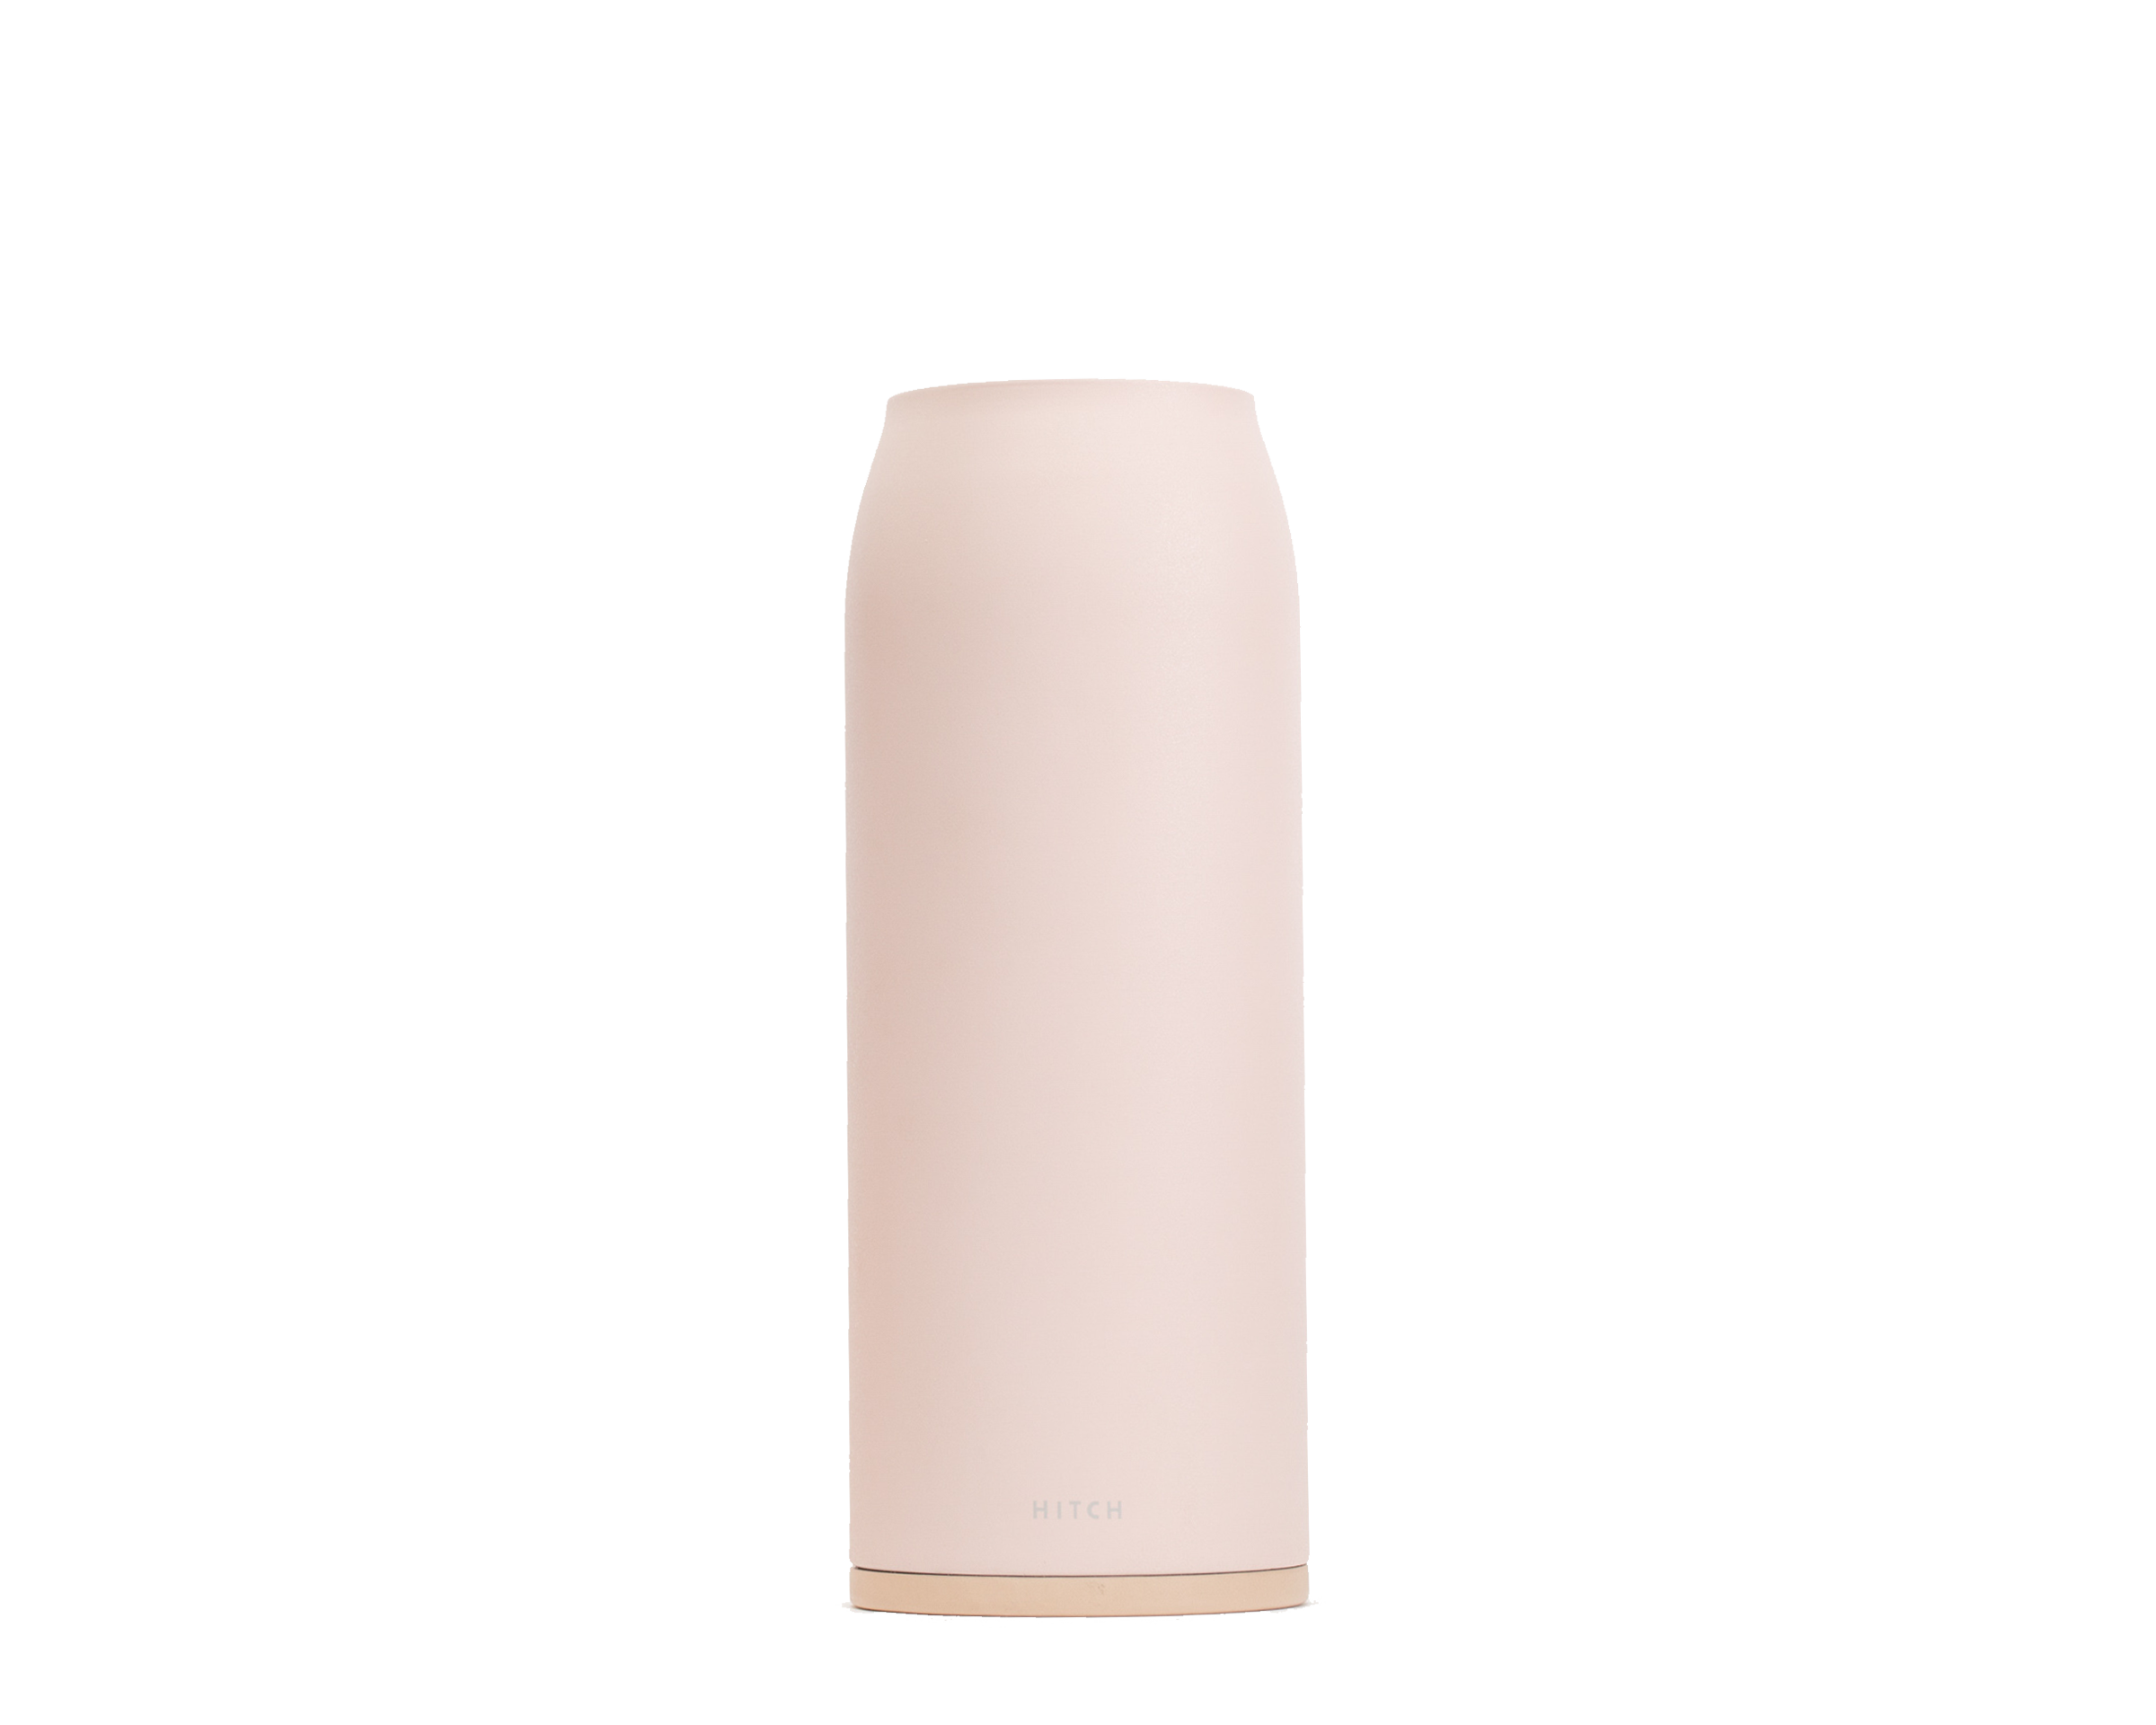 Hitch Bottle and Cup Shell in Pale Blush